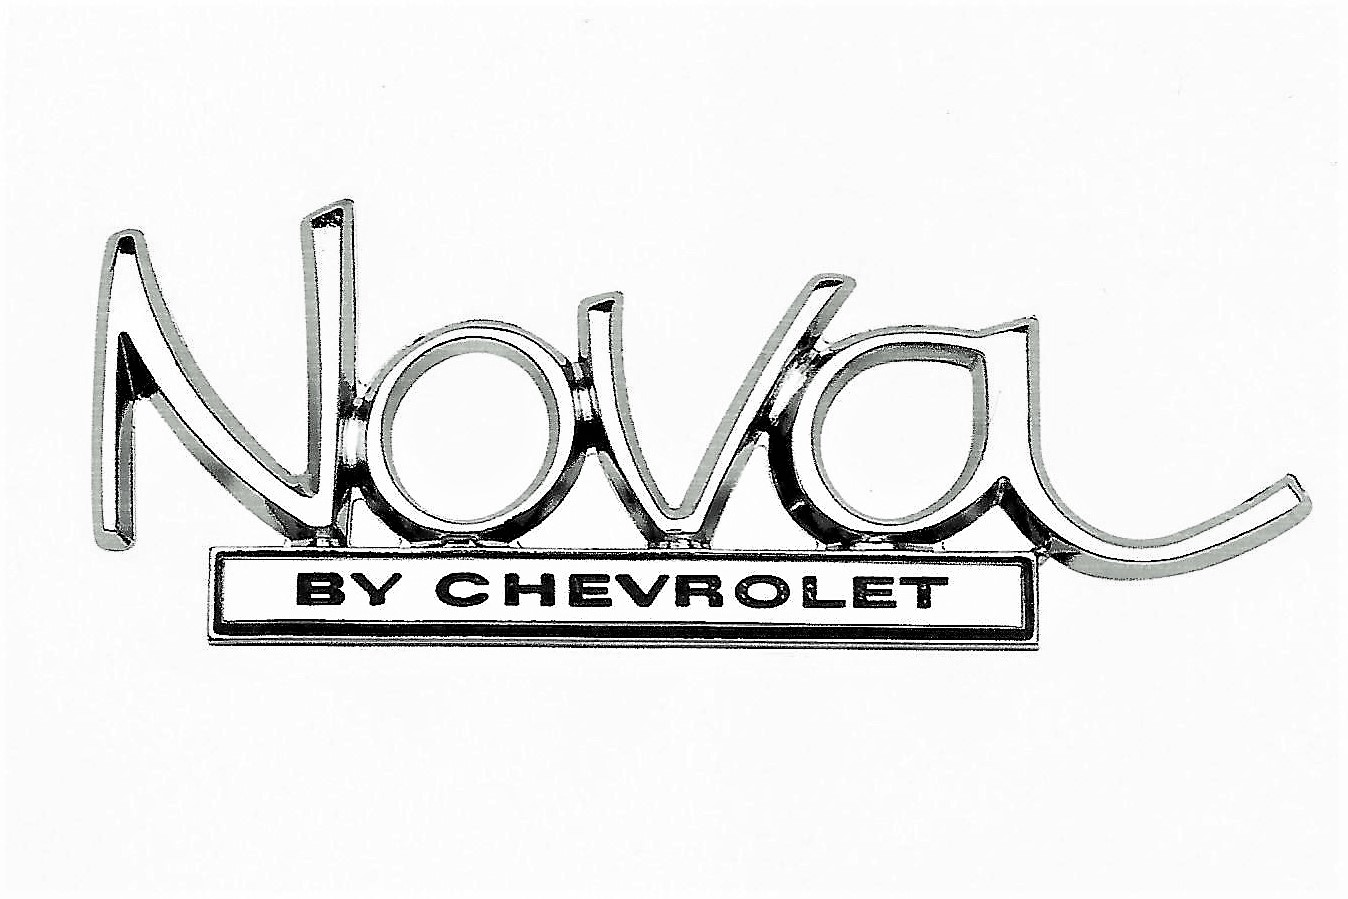 The Nova emblem is correct for 1968-72 models